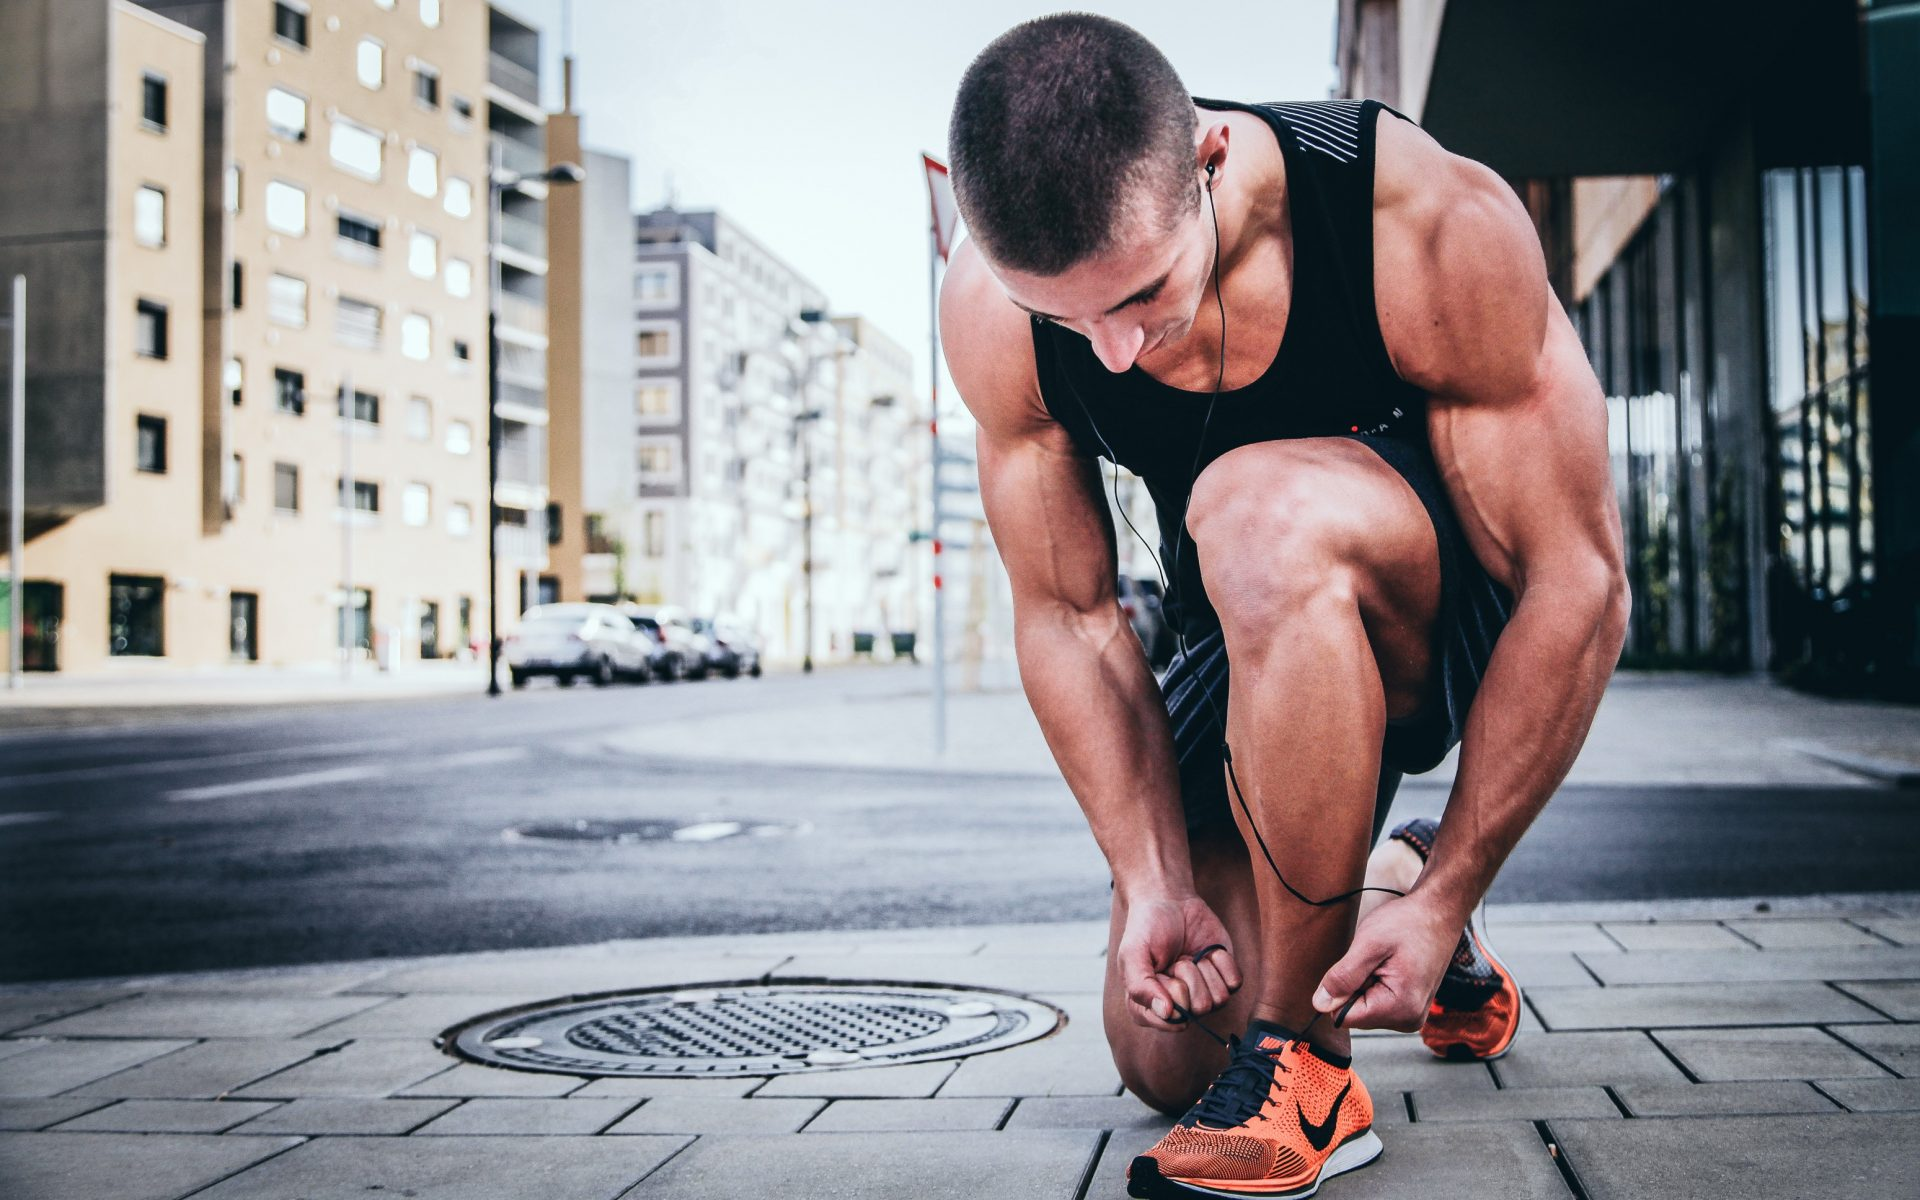 The 6 minute workout you can do anywhere